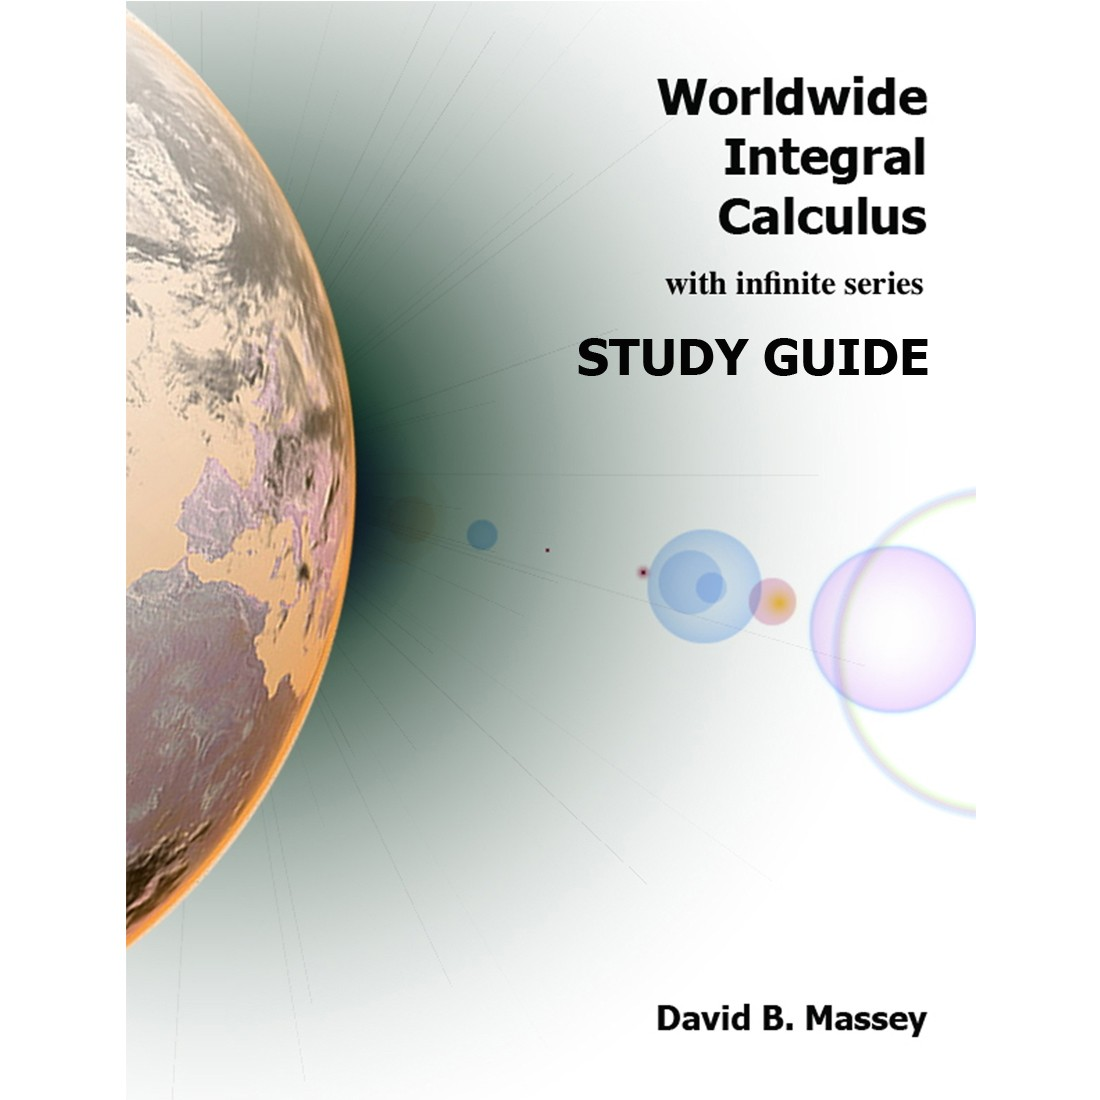 DIGITAL STUDY GUIDE: Worldwide Integral Calculus